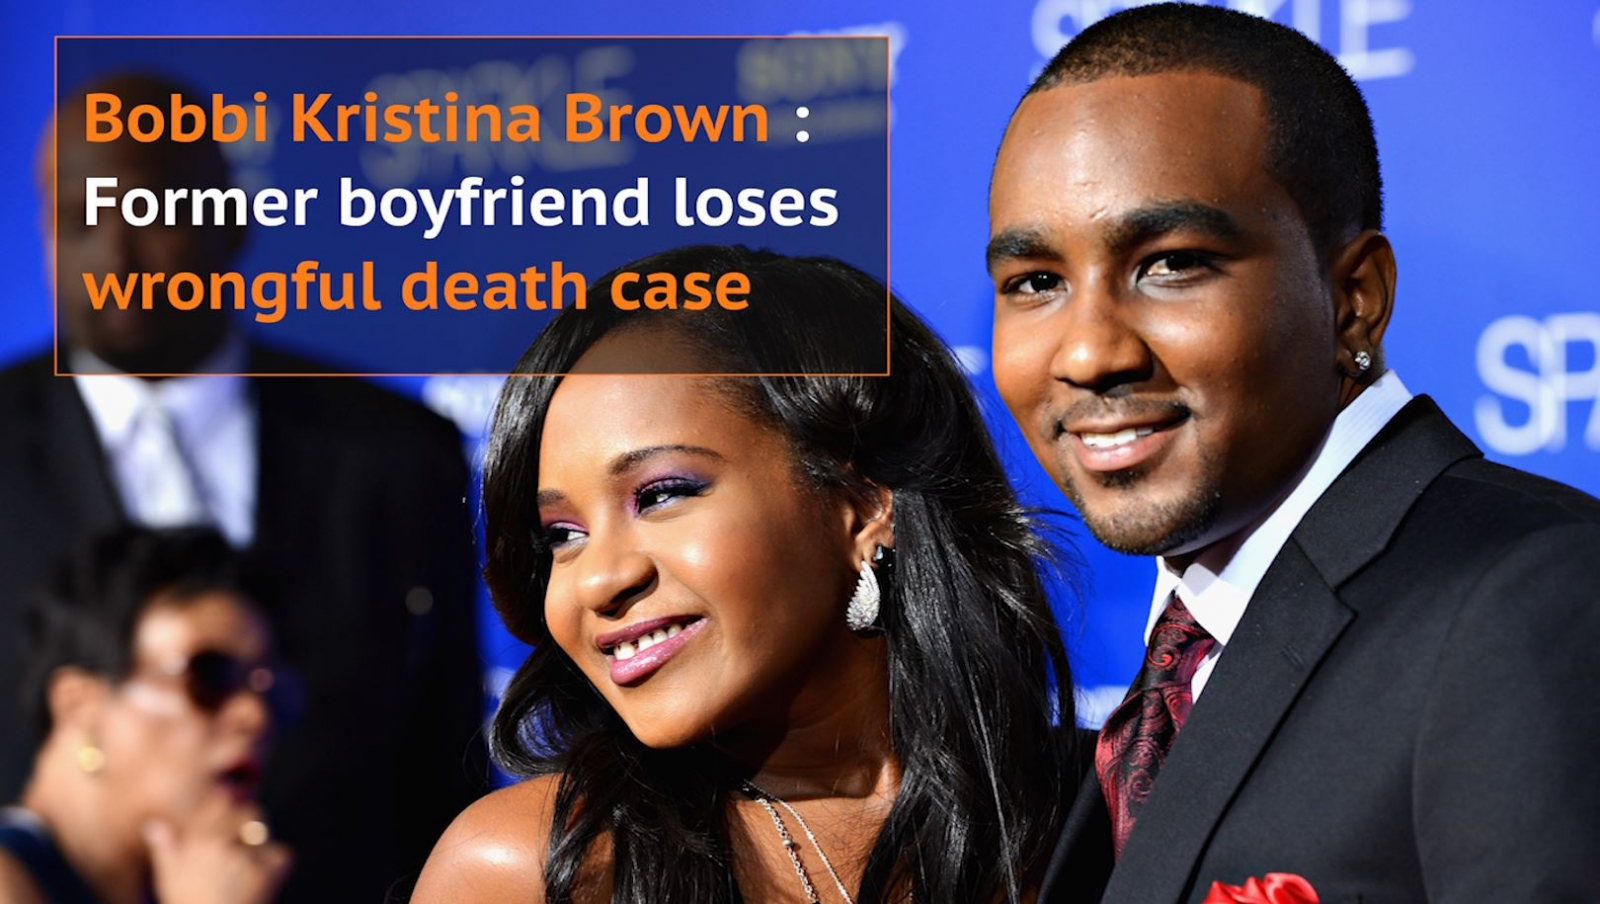 Bobbi kristina brown boyfriend death